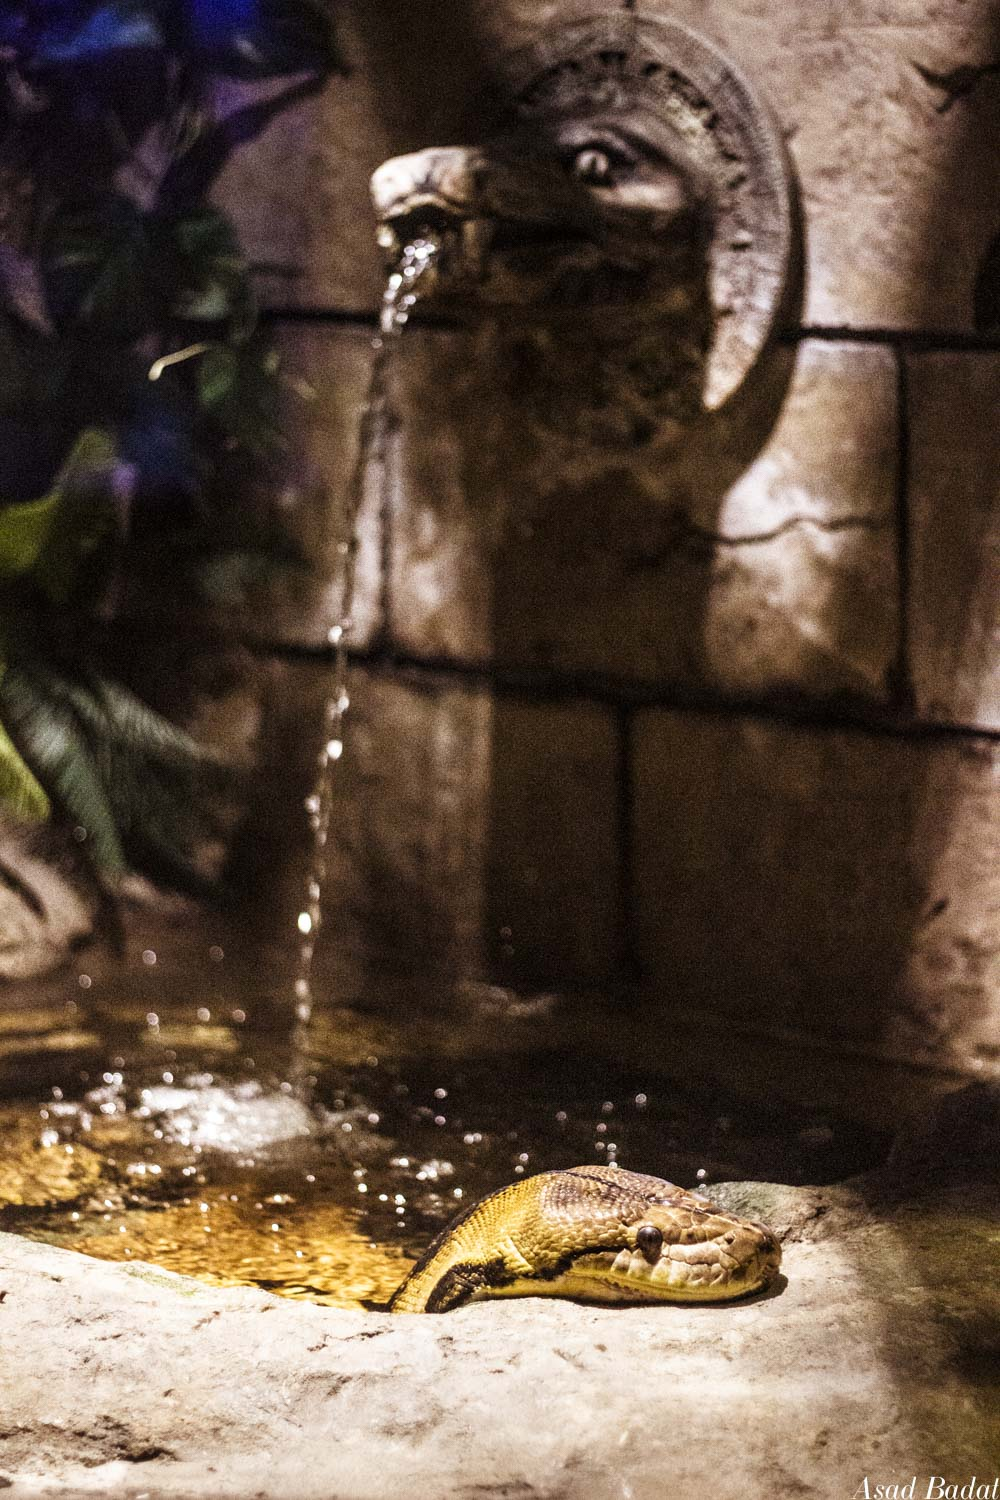 A bathing snake relaxing in a pool with a fancy spout.